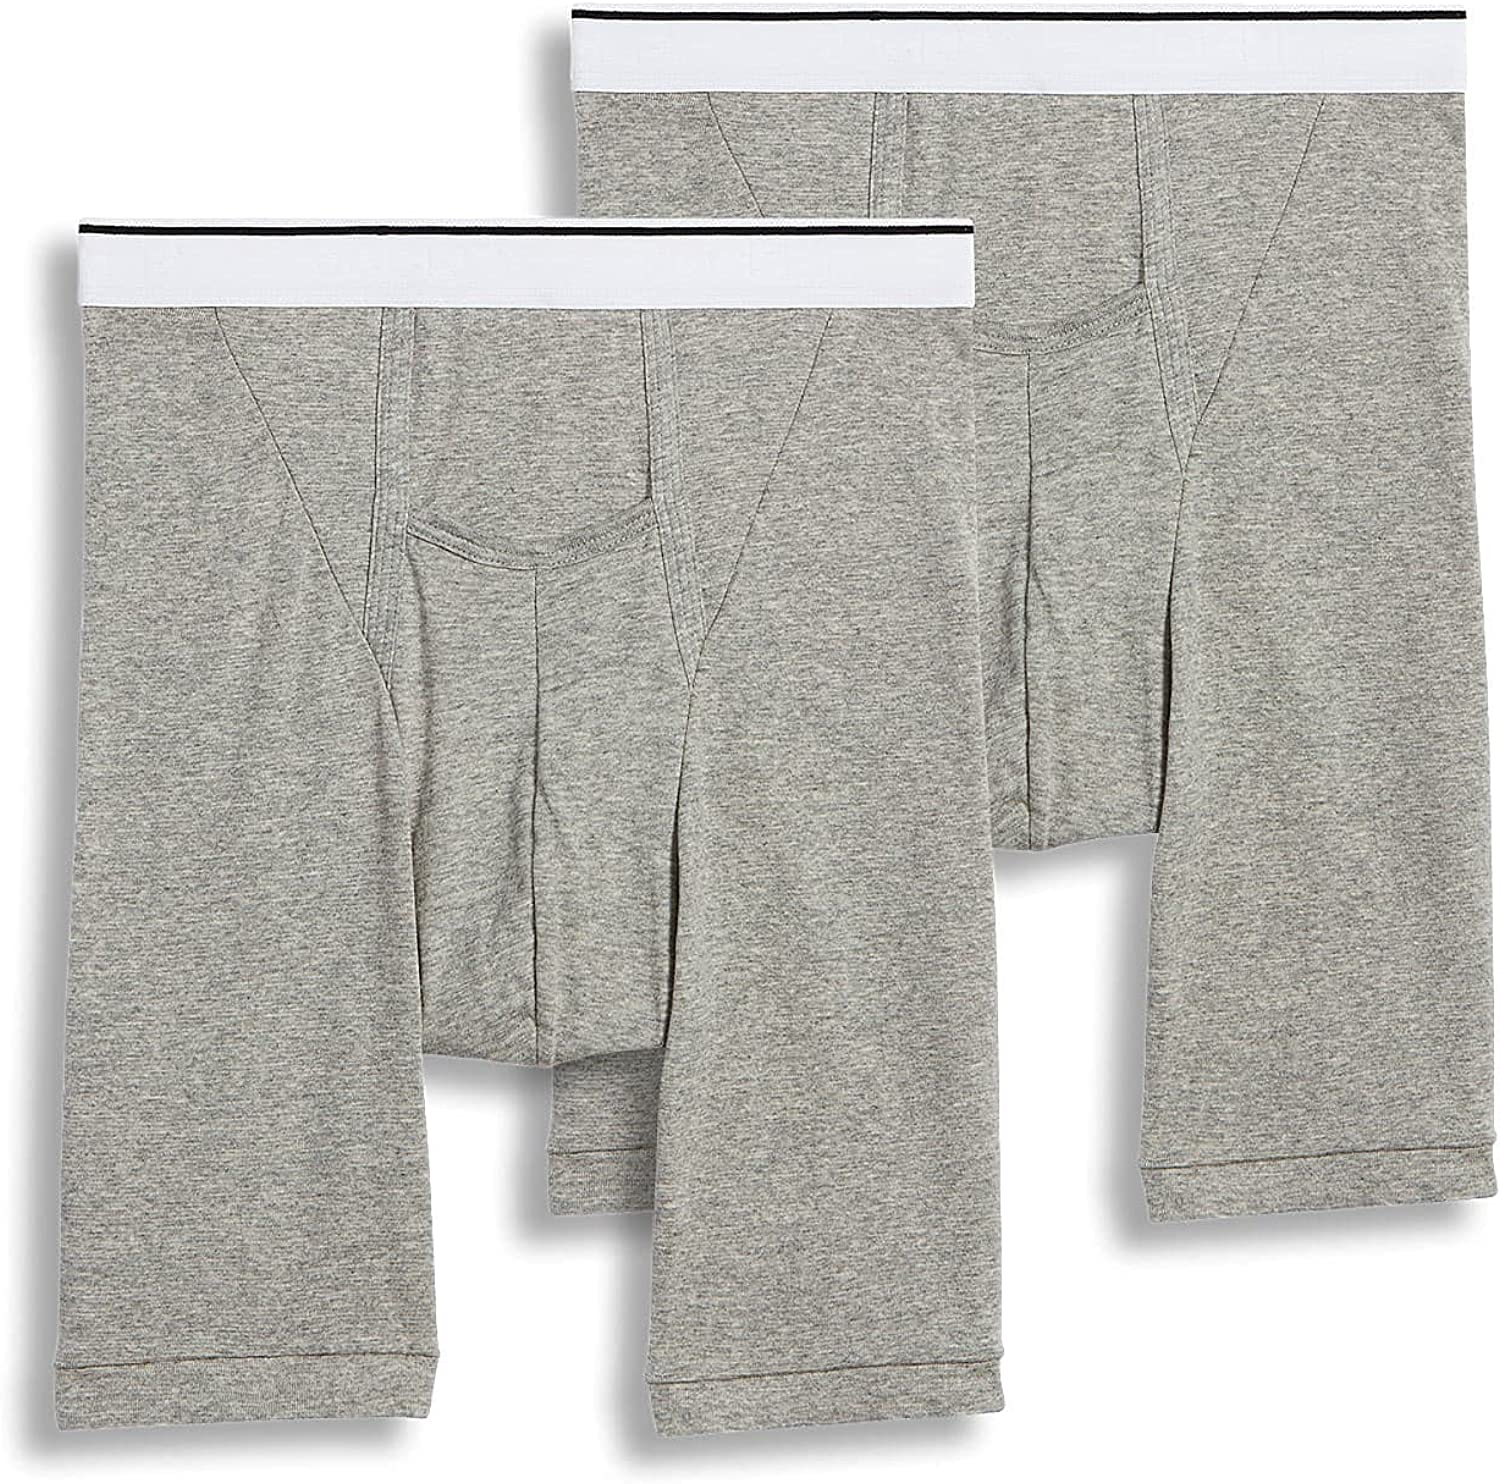 Year-end annual account Selling and selling Jockey Men's Underwear Pouch Midway Pack - 2 Brief